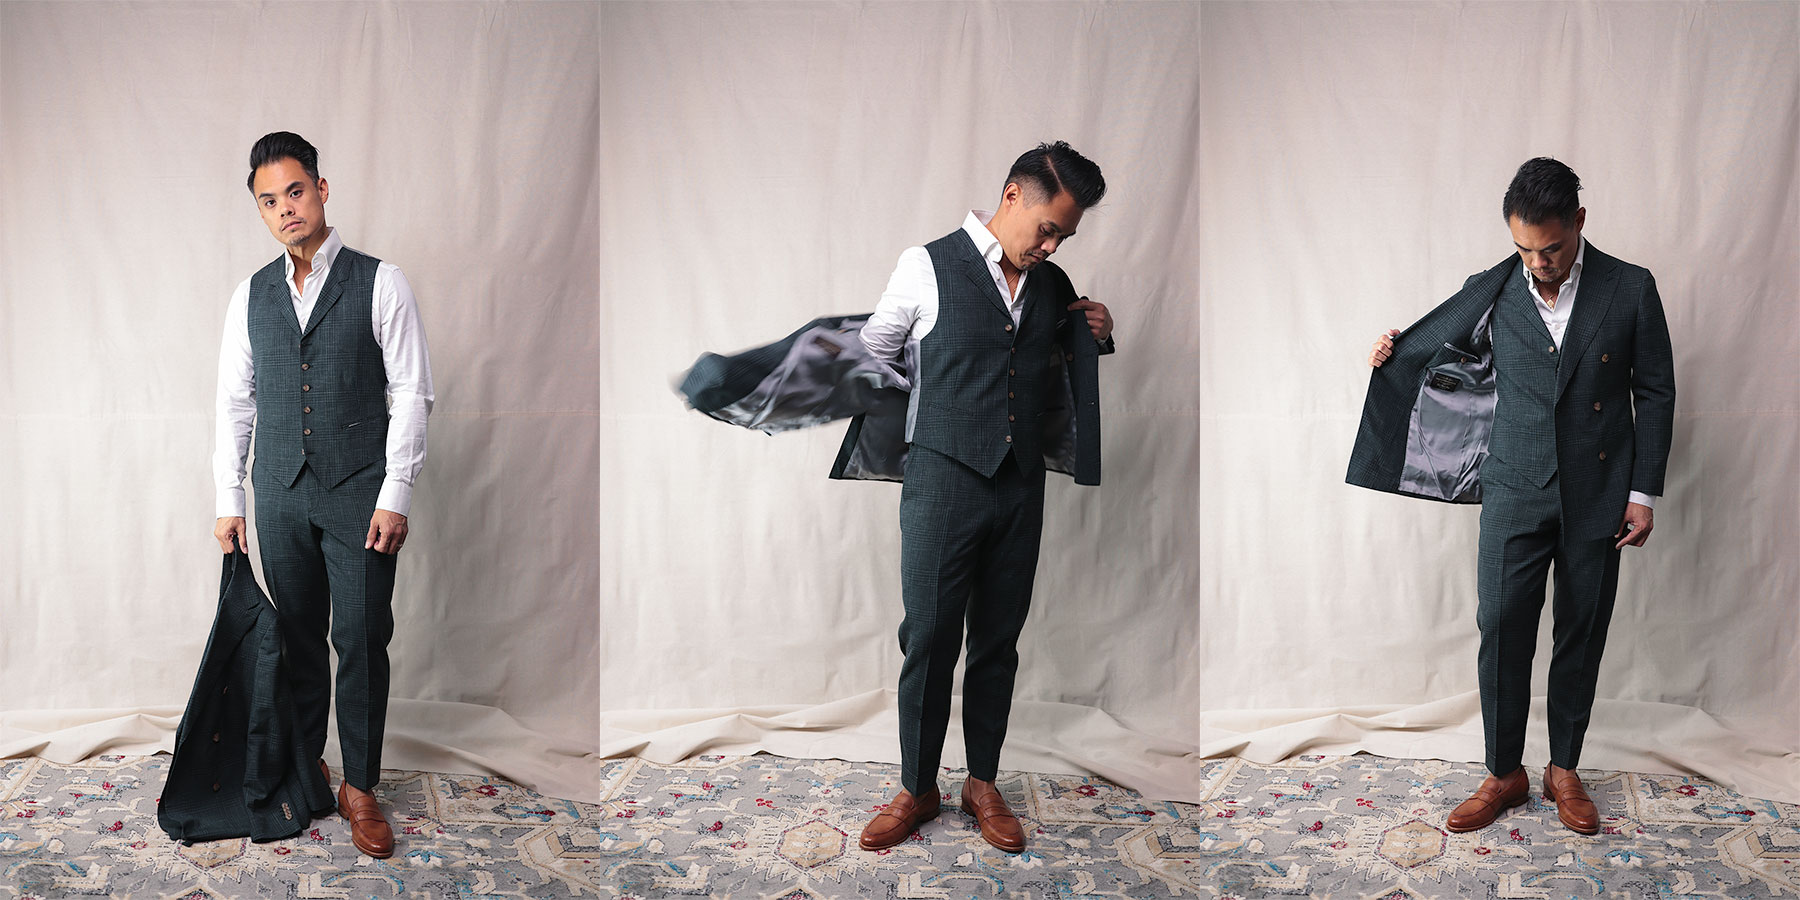 suitsupply custom made - putting on double breasted jacket wearing a vest and trousers - effortless gent